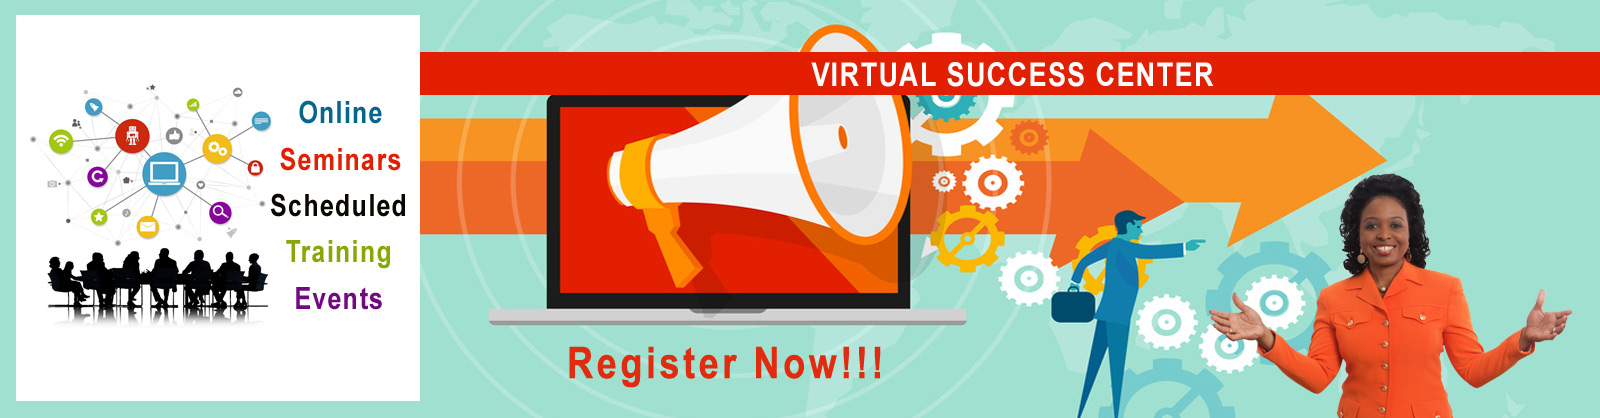 Virtual Success Center - Online Seminar